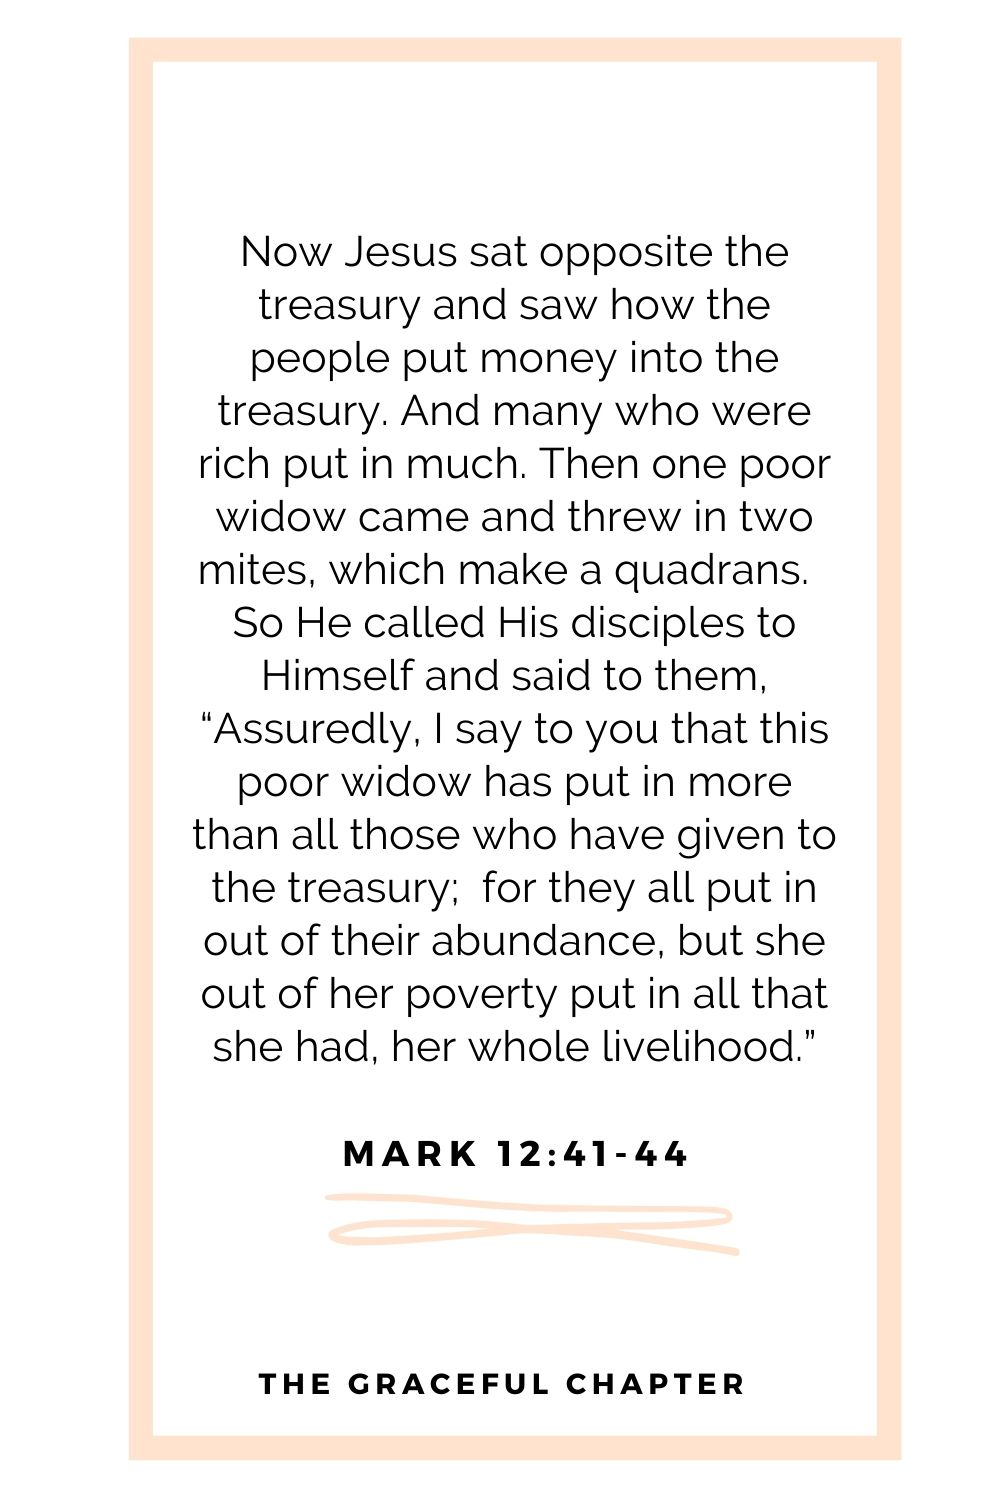 """Now Jesus sat opposite the treasury and saw how the people put money into the treasury. And many who were rich put in much. Then one poor widow came and threw in two mites, which make a quadrans.  So He called His disciples to Himself and said to them, """"Assuredly, I say to you that this poor widow has put in more than all those who have given to the treasury;  for they all put in out of their abundance, but she out of her poverty put in all that she had, her whole livelihood."""" Mark 12:41-44"""